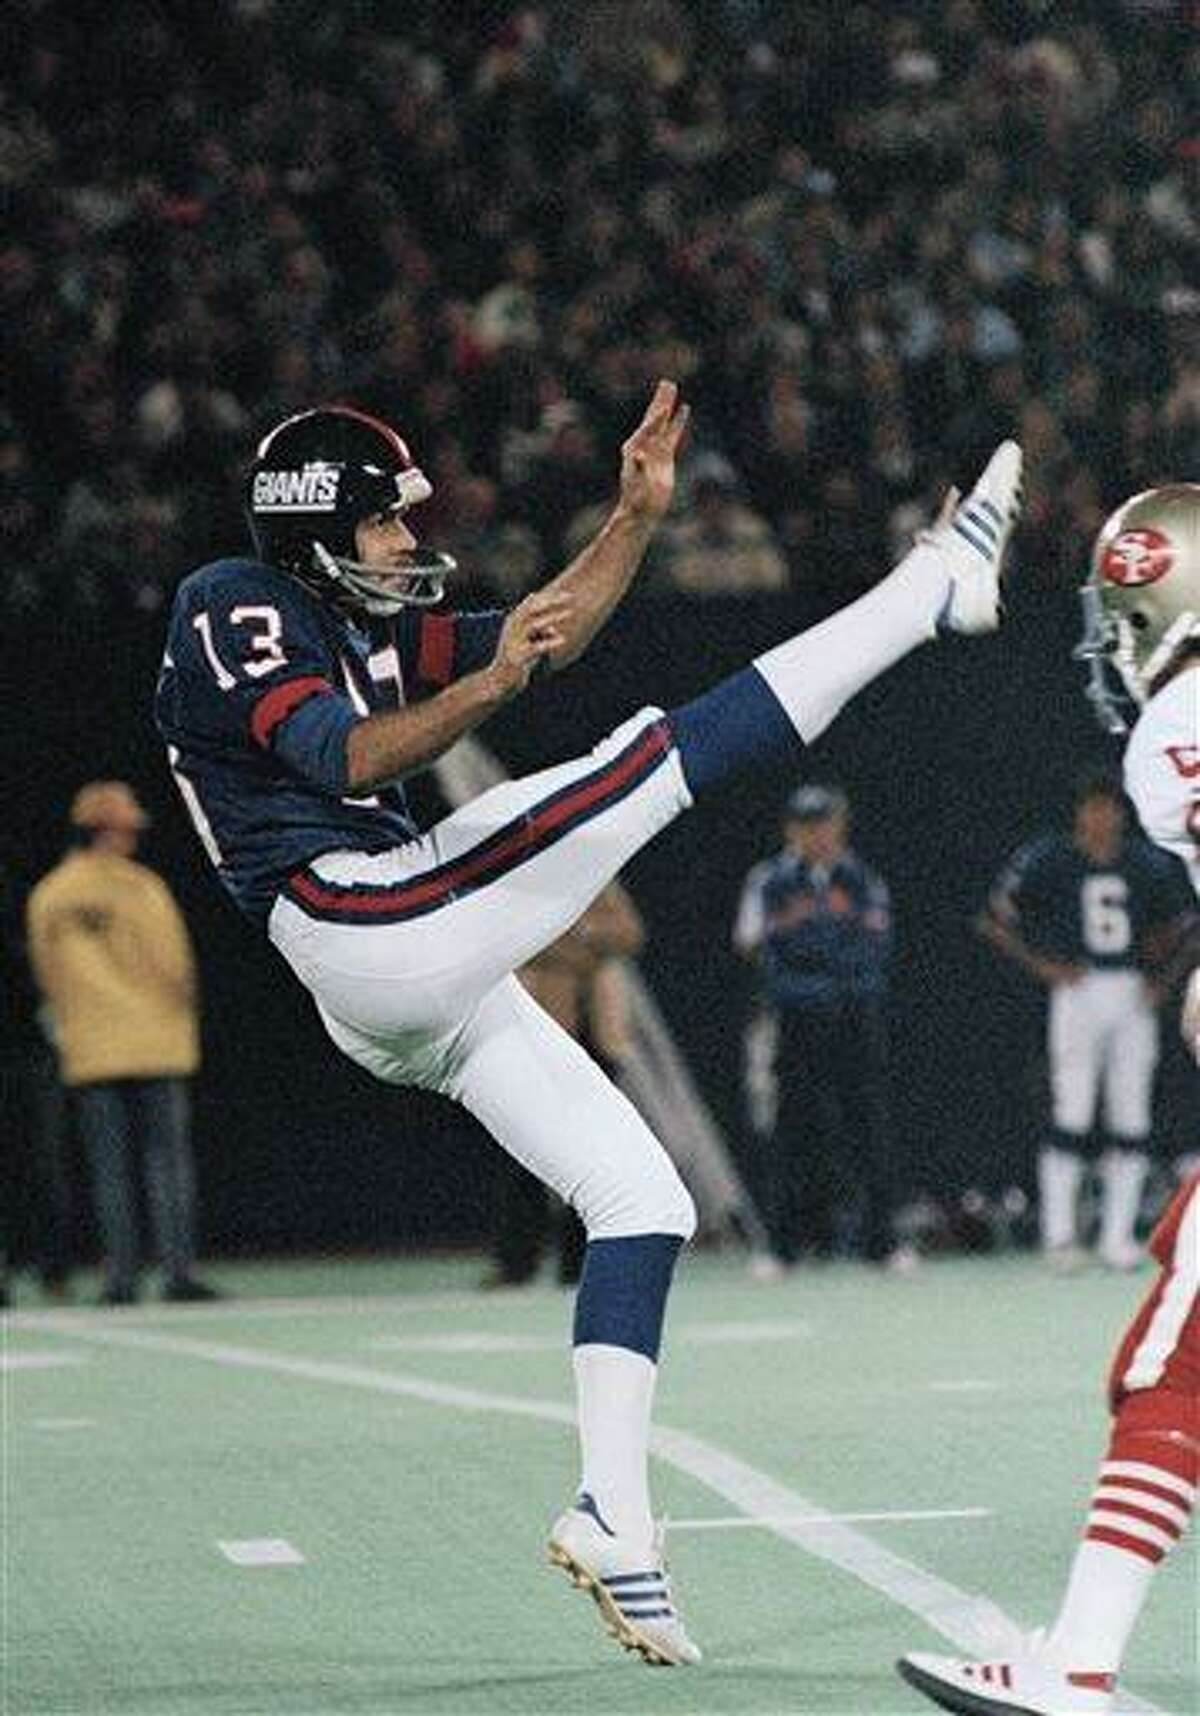 FILE - In this 1984 photo, New York Giants' Dave Jennings punts against the San Francisco 49ers during an NFL football game. Former New York Giants punter and radio analyst Dave Jennings has died. He was 61. The Giants announced that Jennings died at his home in Upper Saddle River, N.J., on Wednesday morning, June 19, 2013. (AP Photo/File)